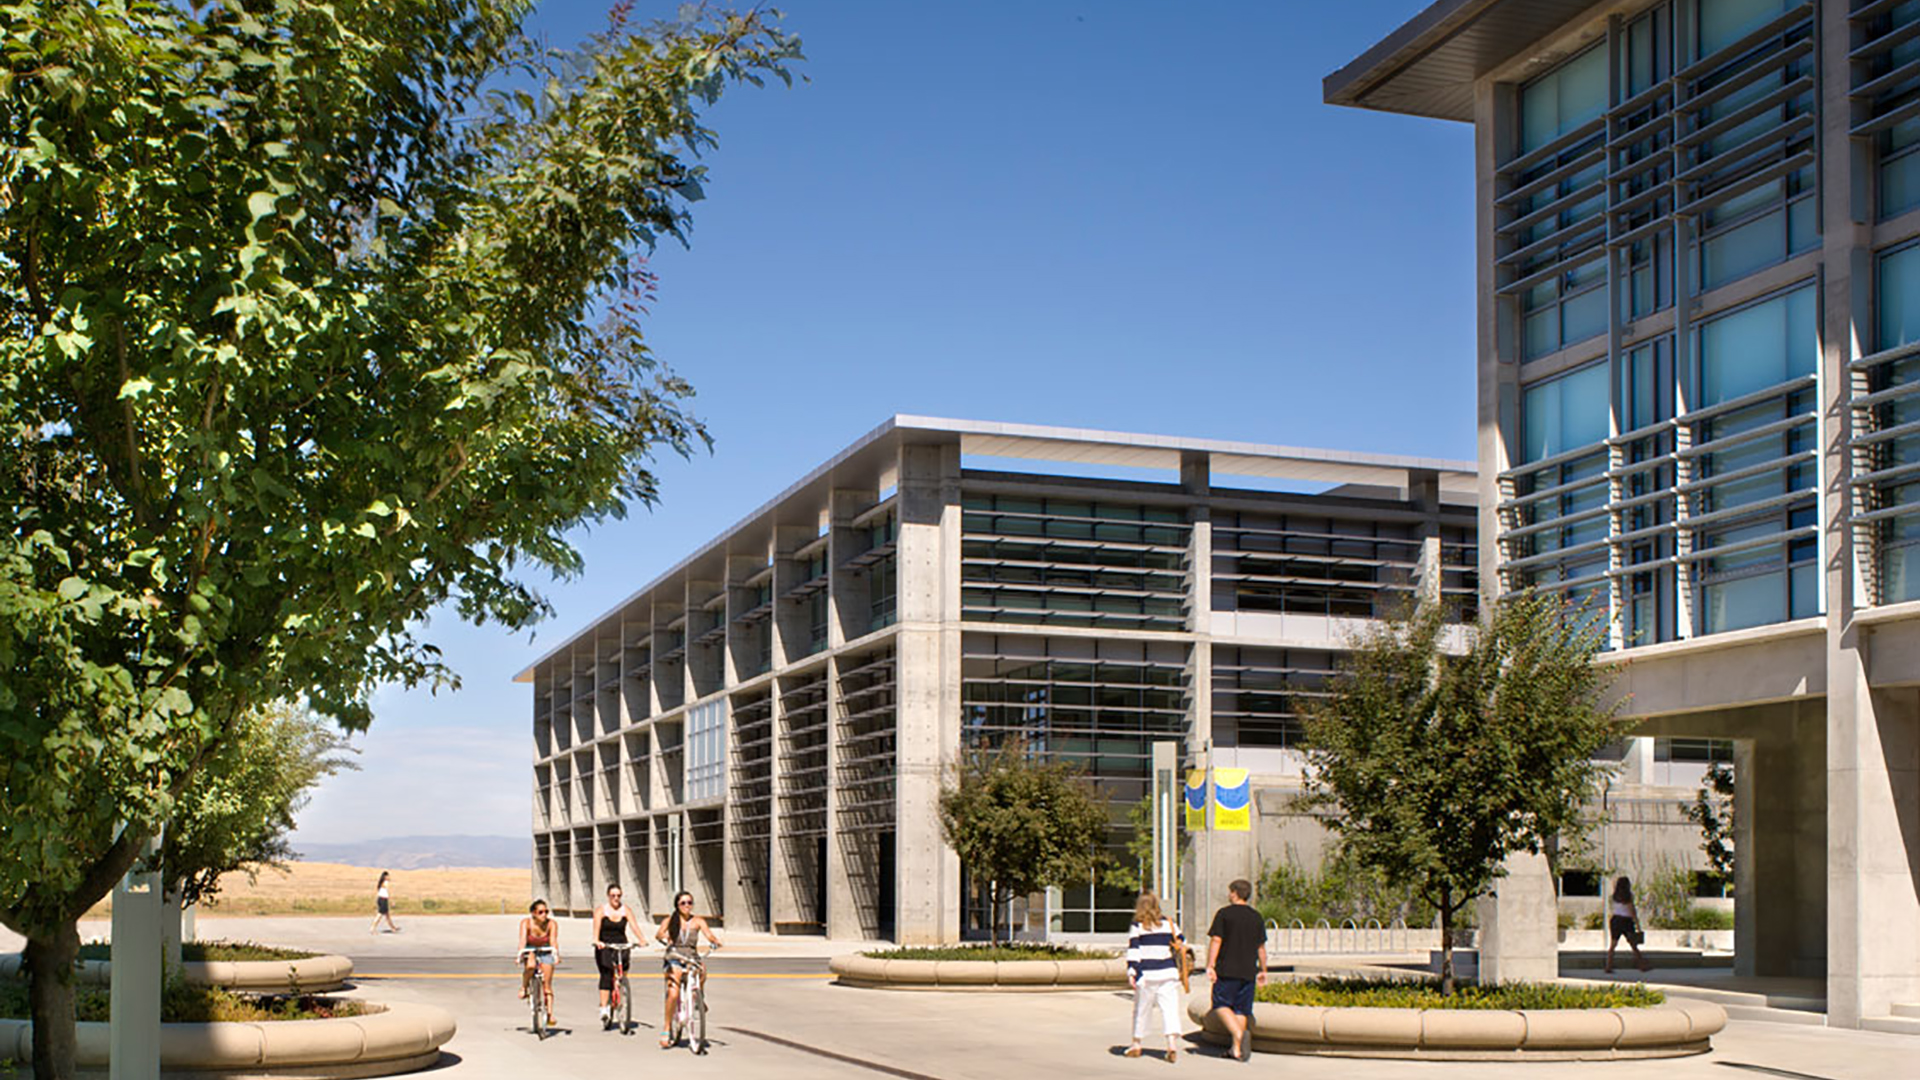 MERCED SOCIAL SCIENCES AND MANAGEMENT BUILDING